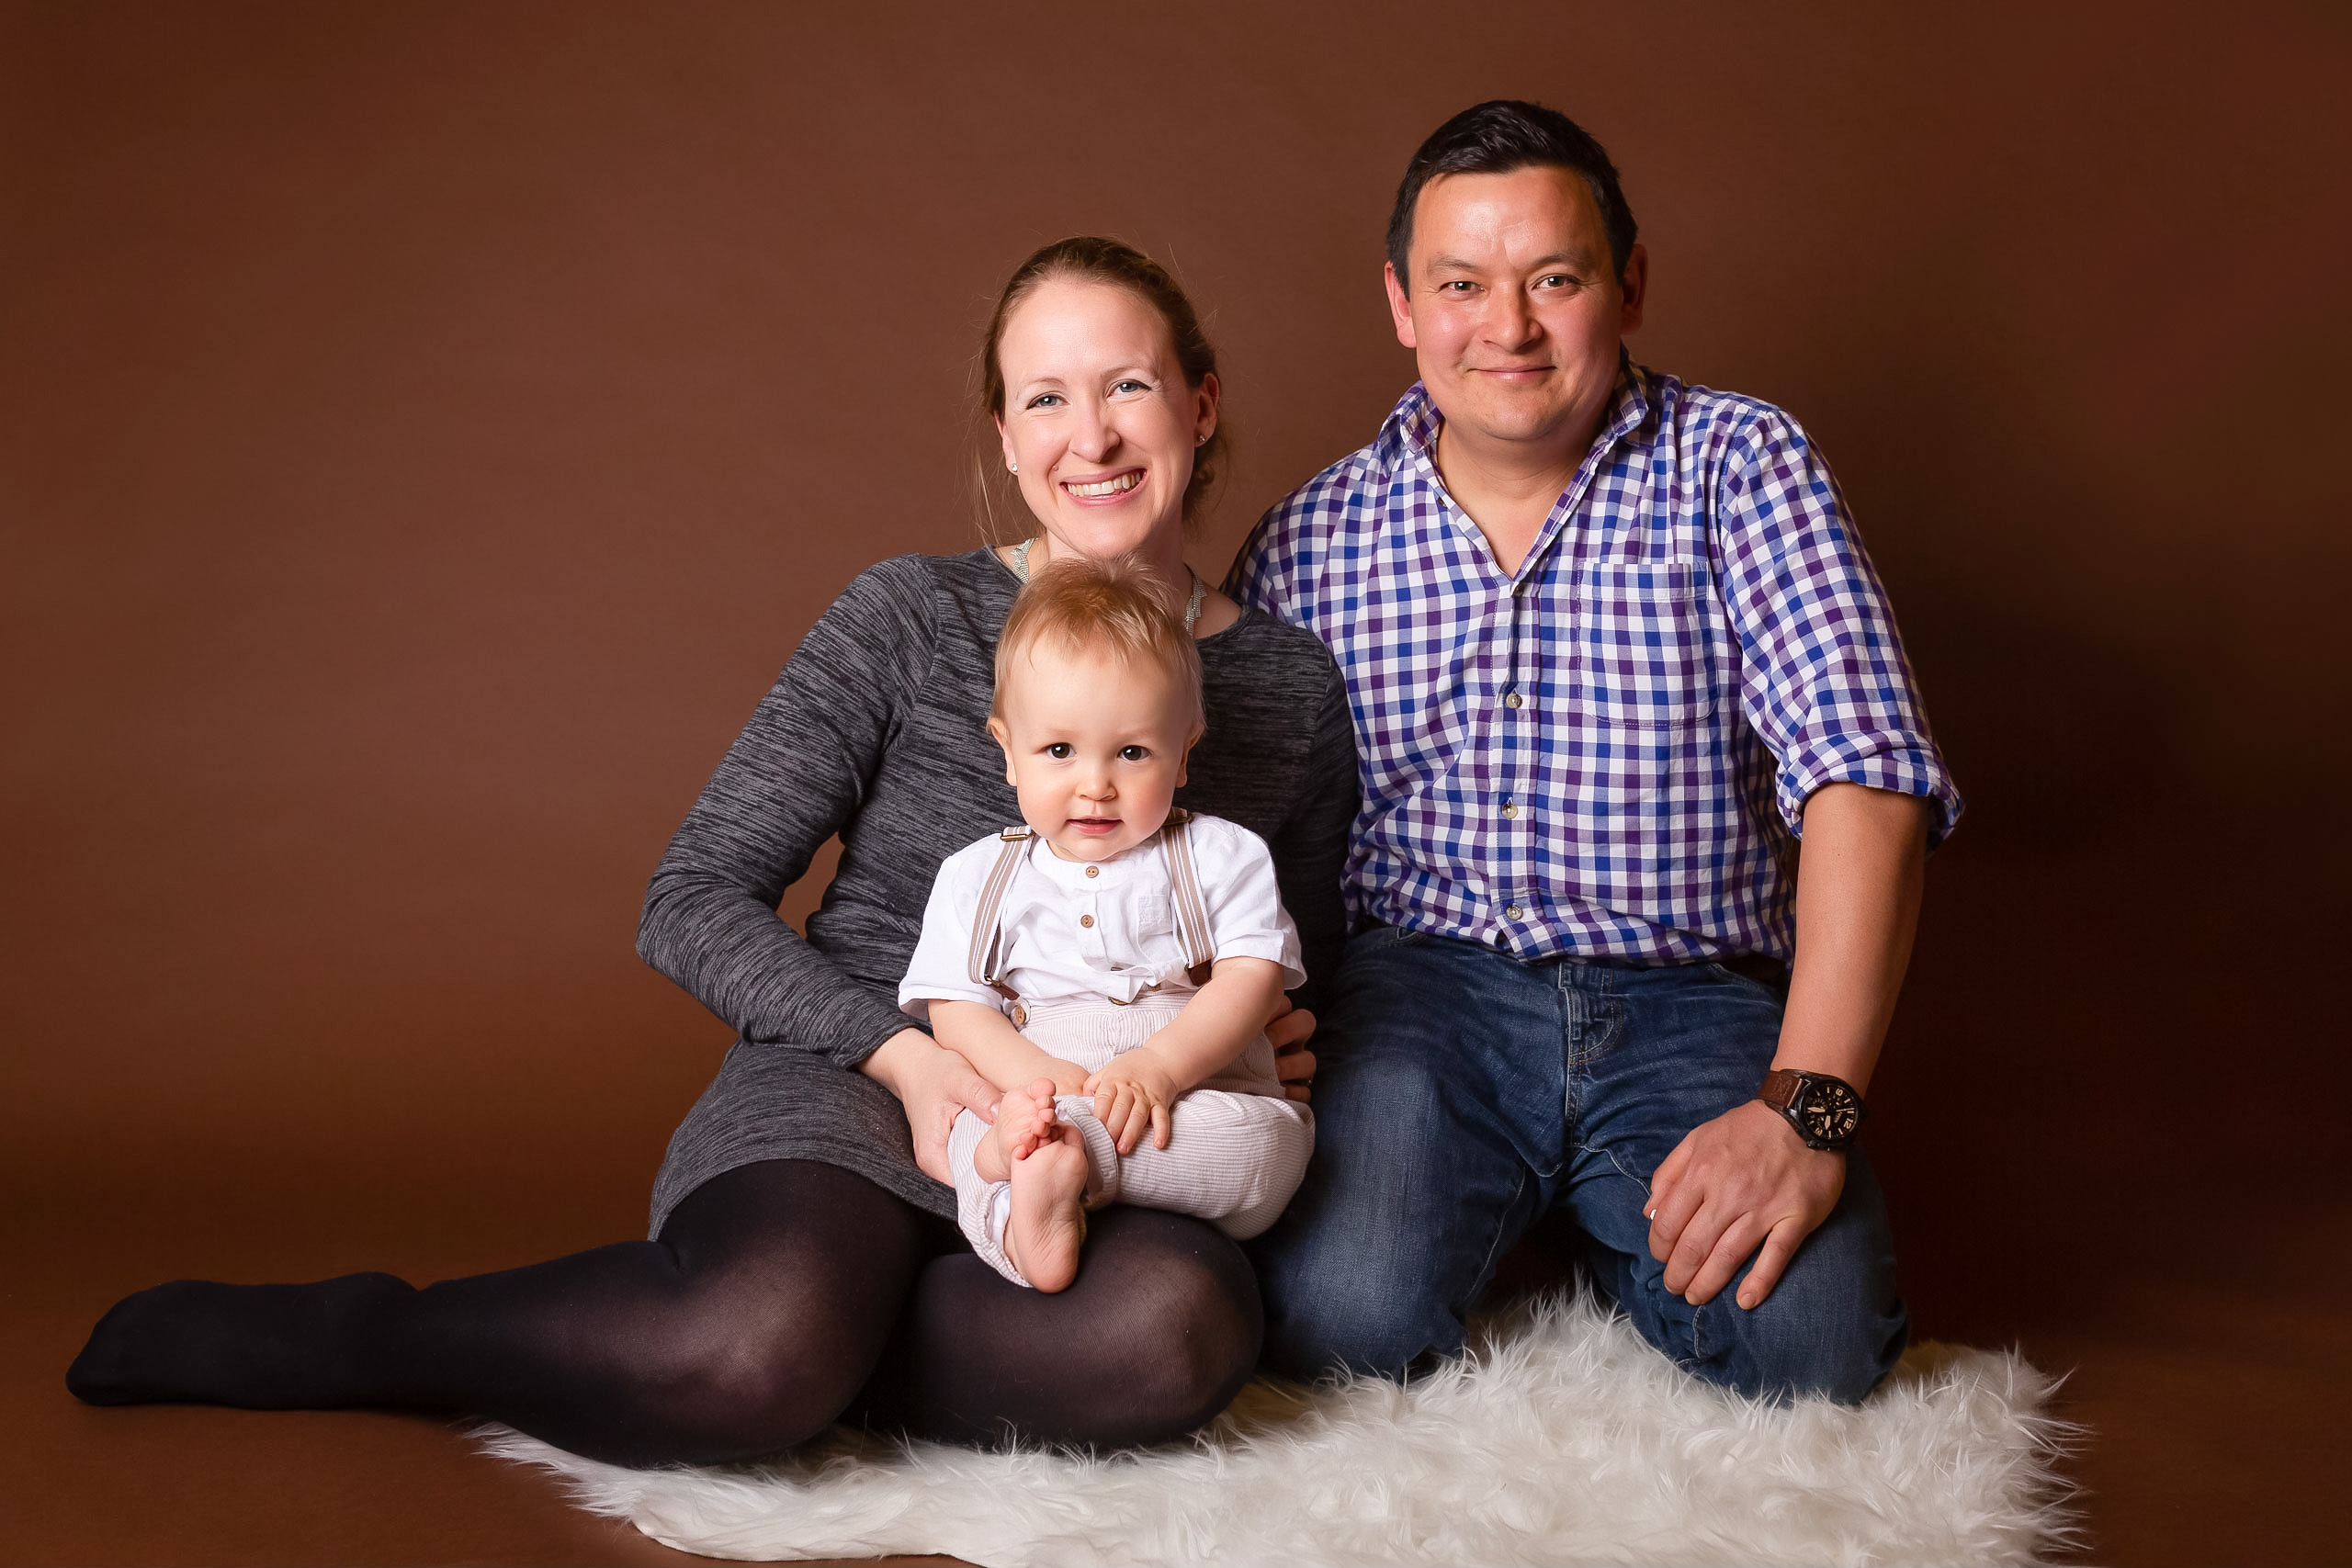 Horsham Photographer, Family Photographer West Sussex